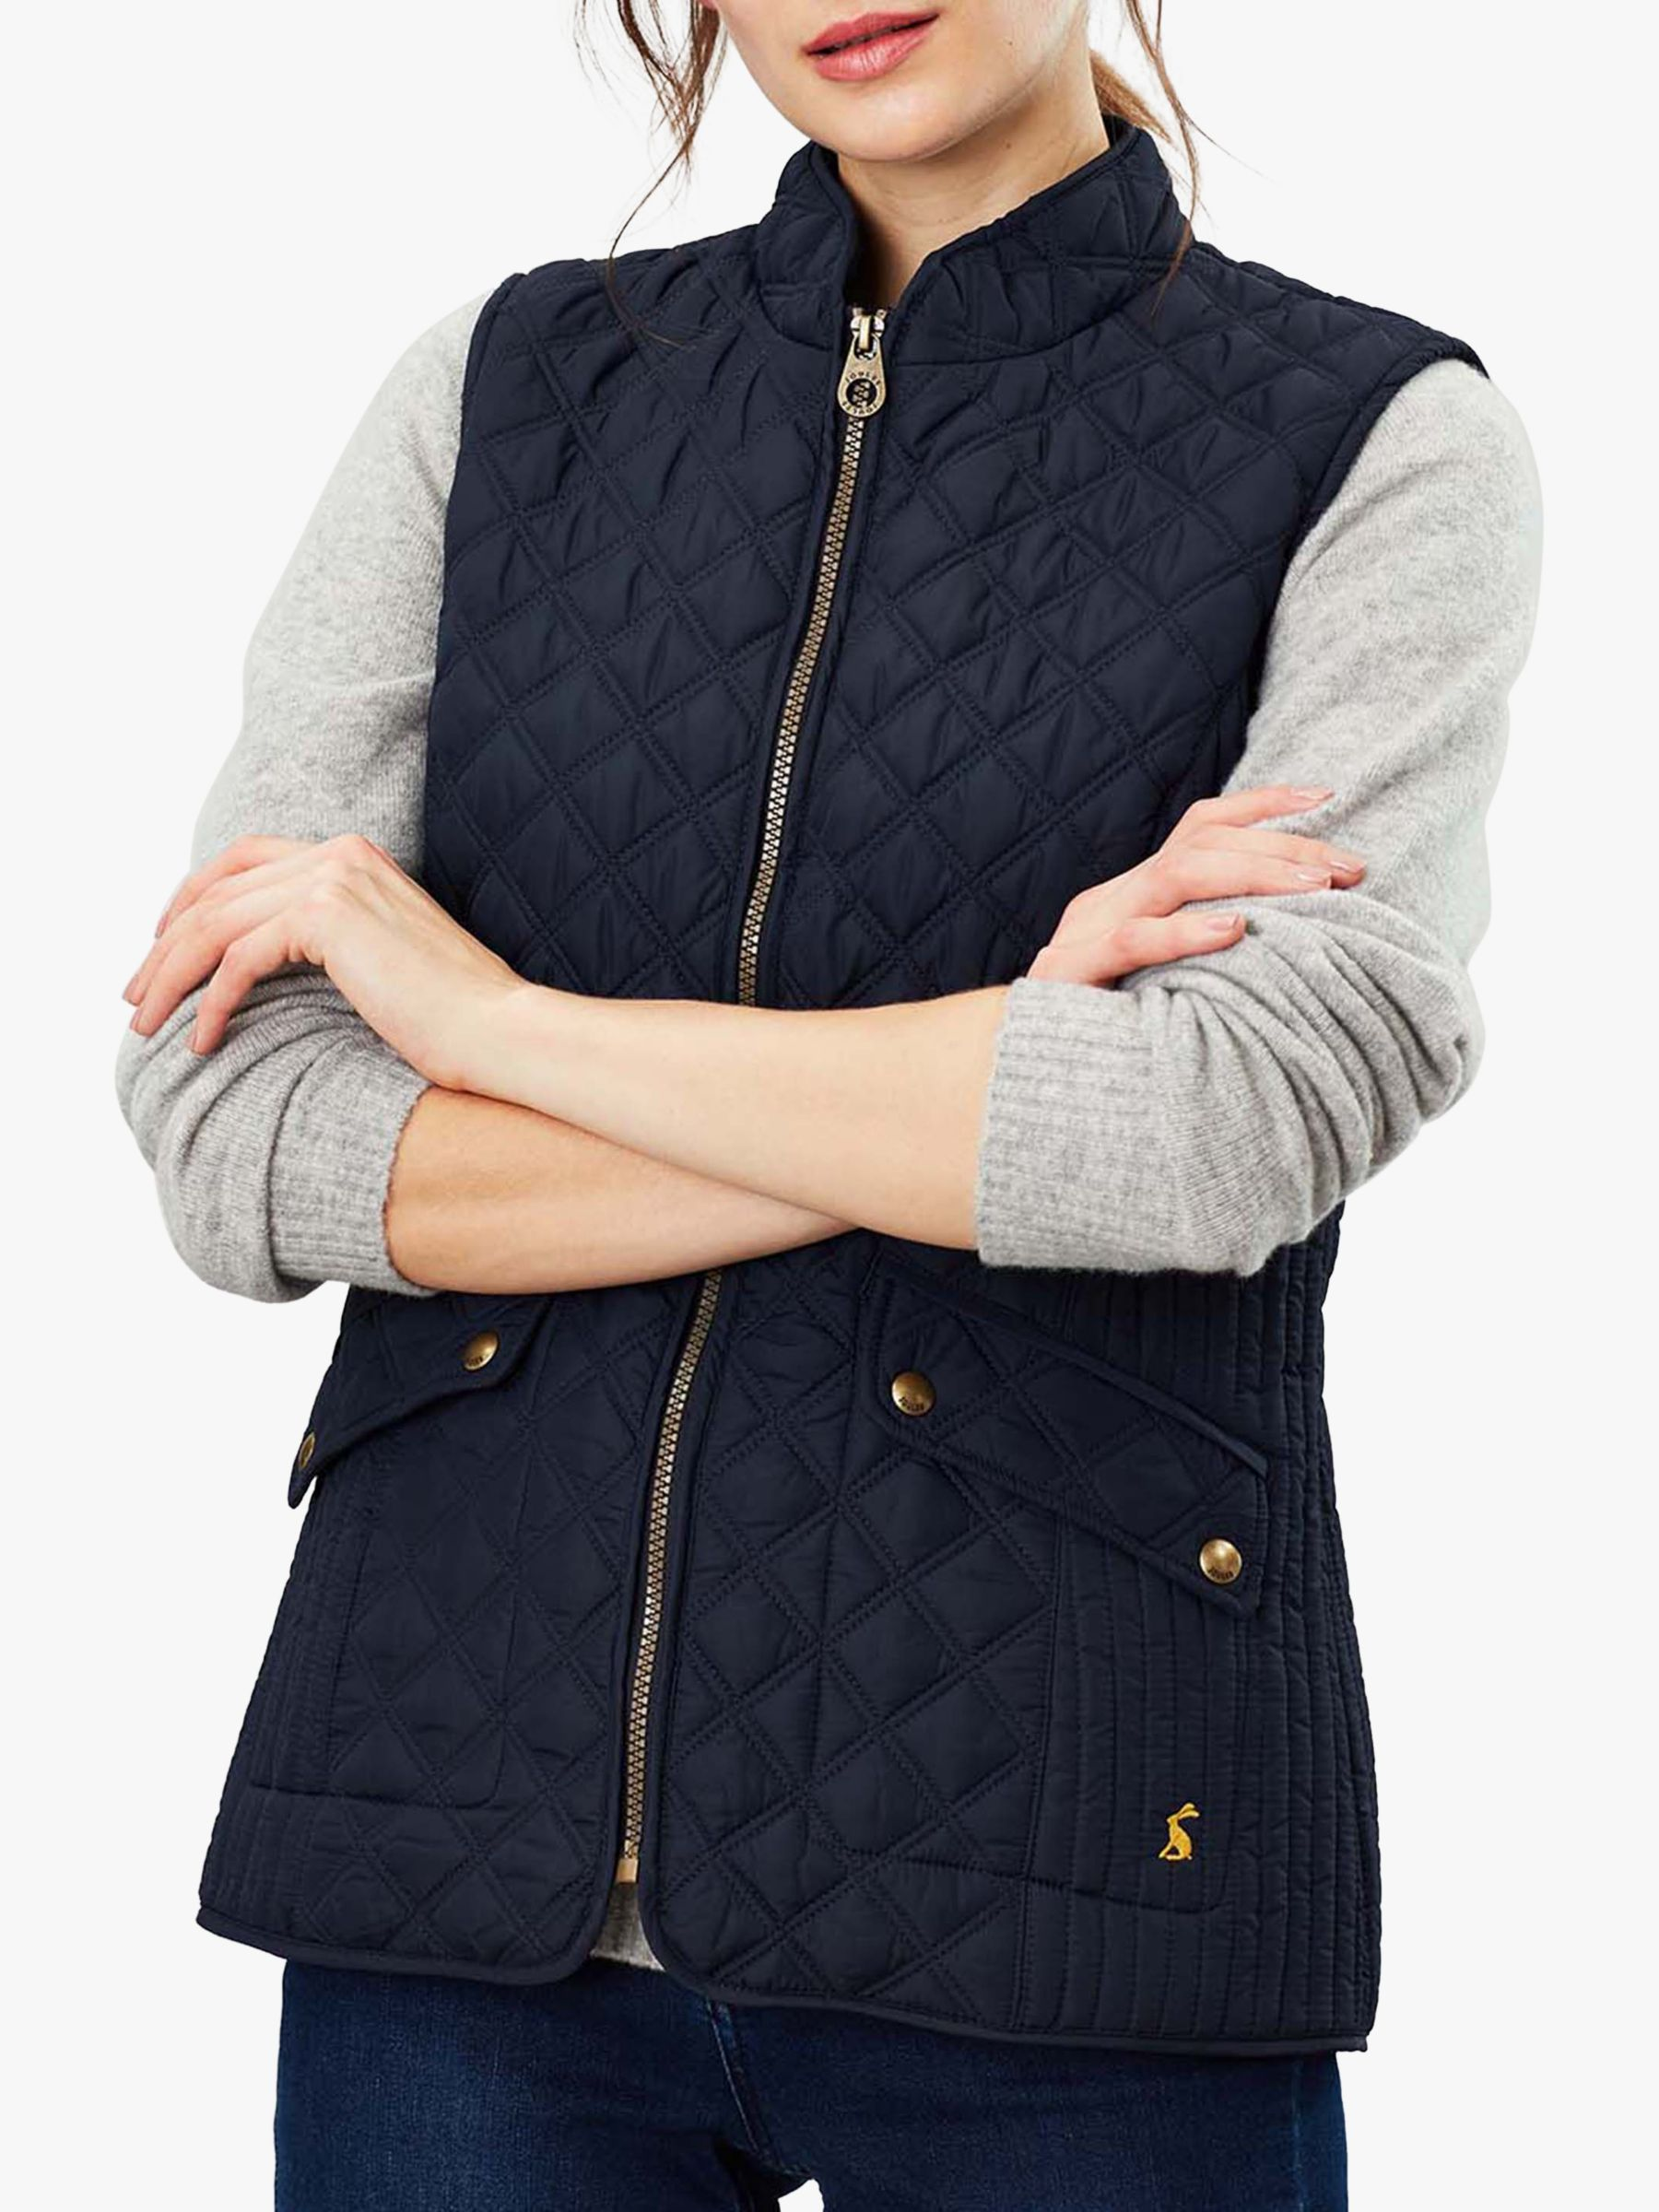 Joules Joules Minx Quilted Gilet, Marine Navy